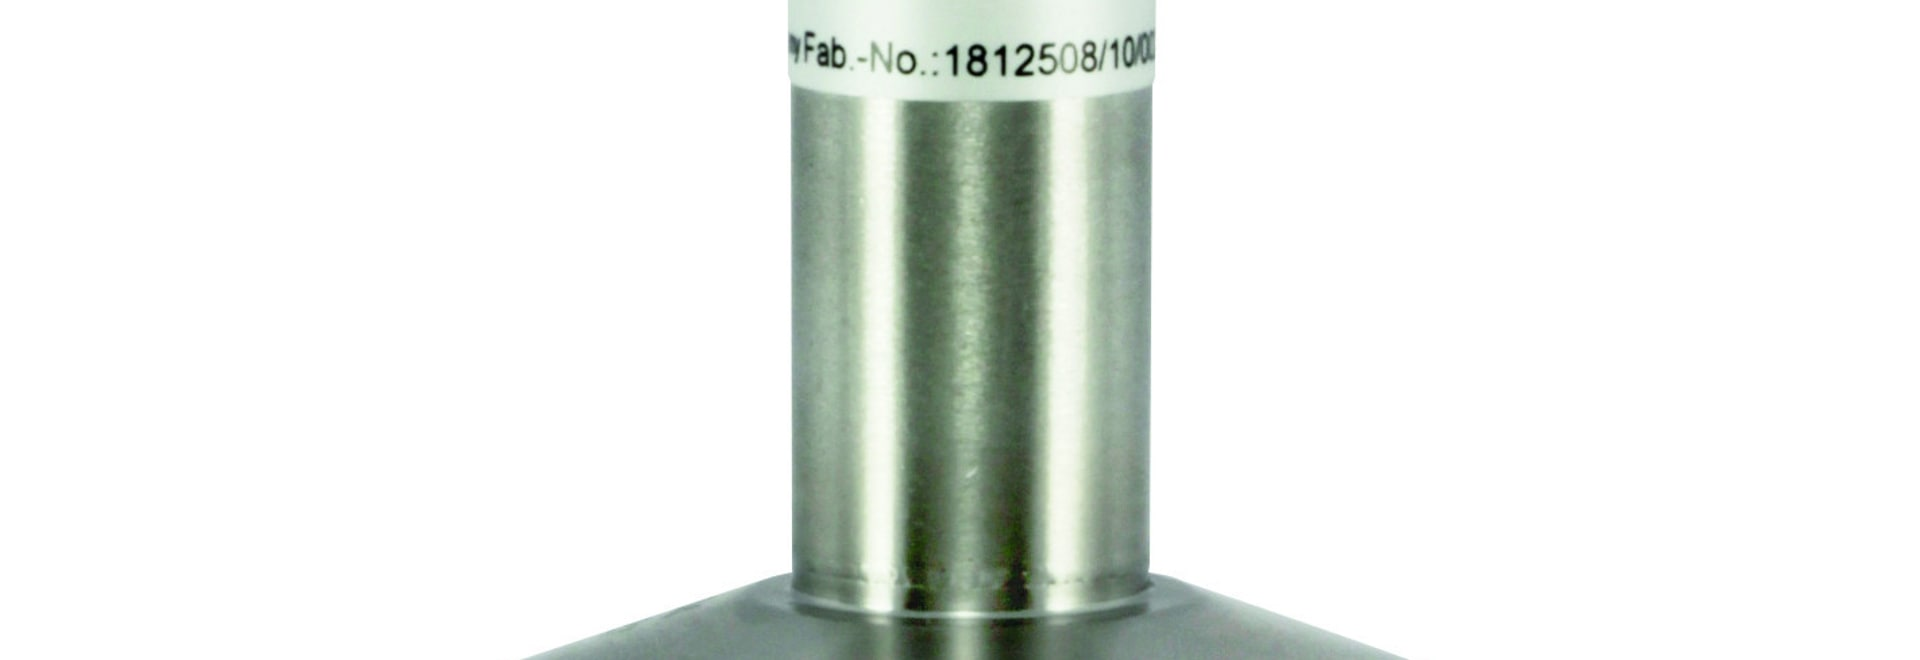 Resistance thermometer in IO-link technology, type series GA2700, fast response, hygienic design